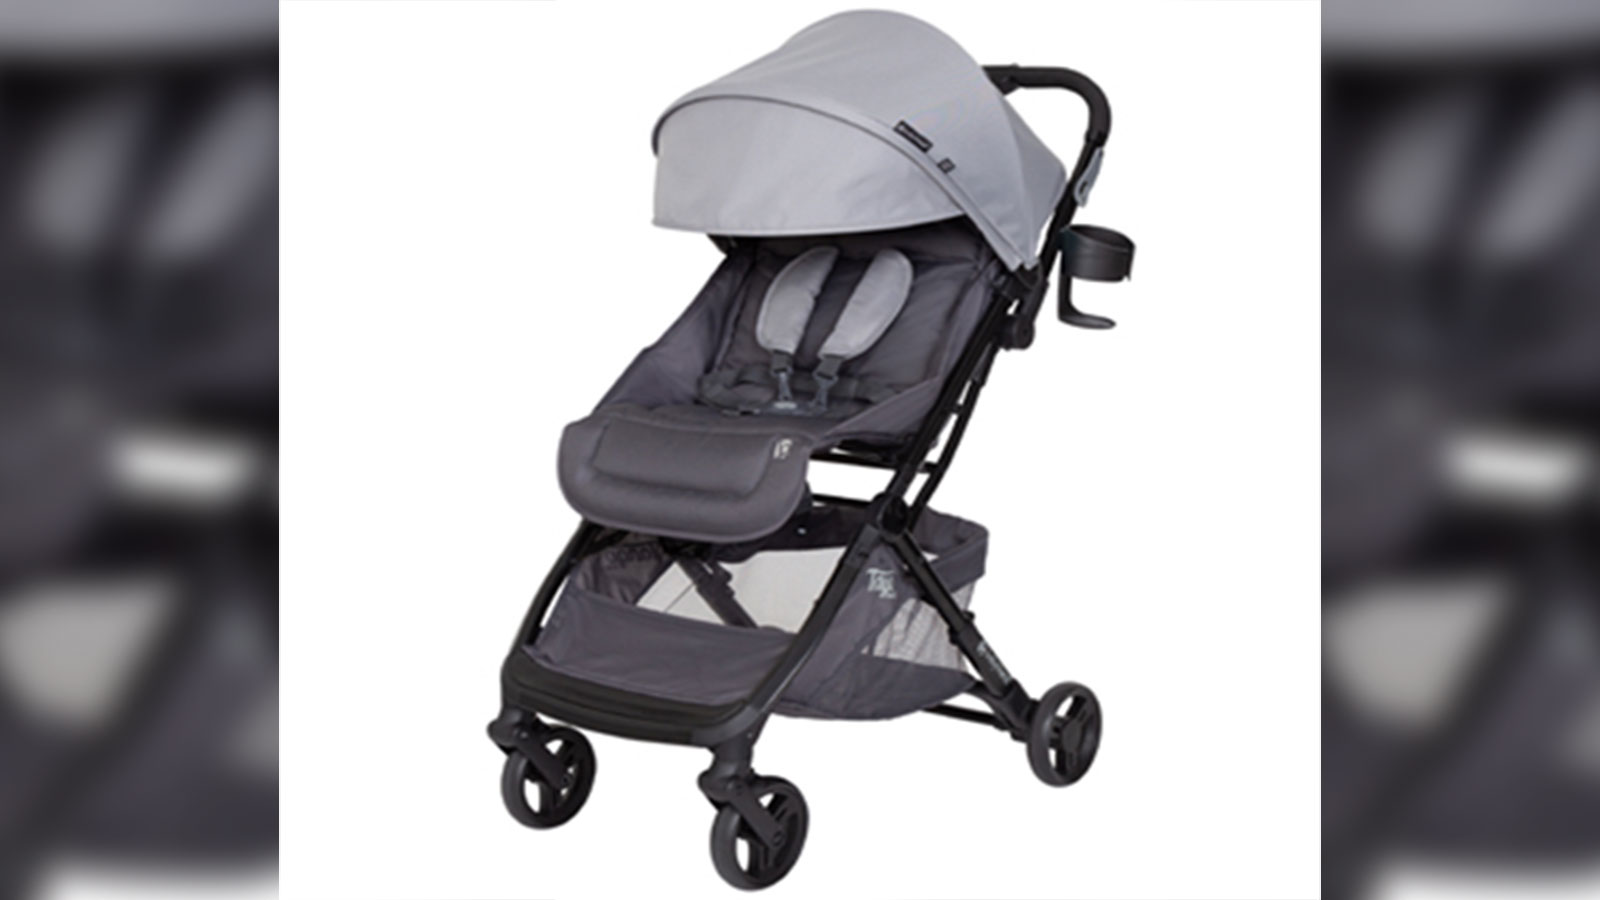 A baby stroller sold at Target and Amazon was recalled because of a possible fall hazard